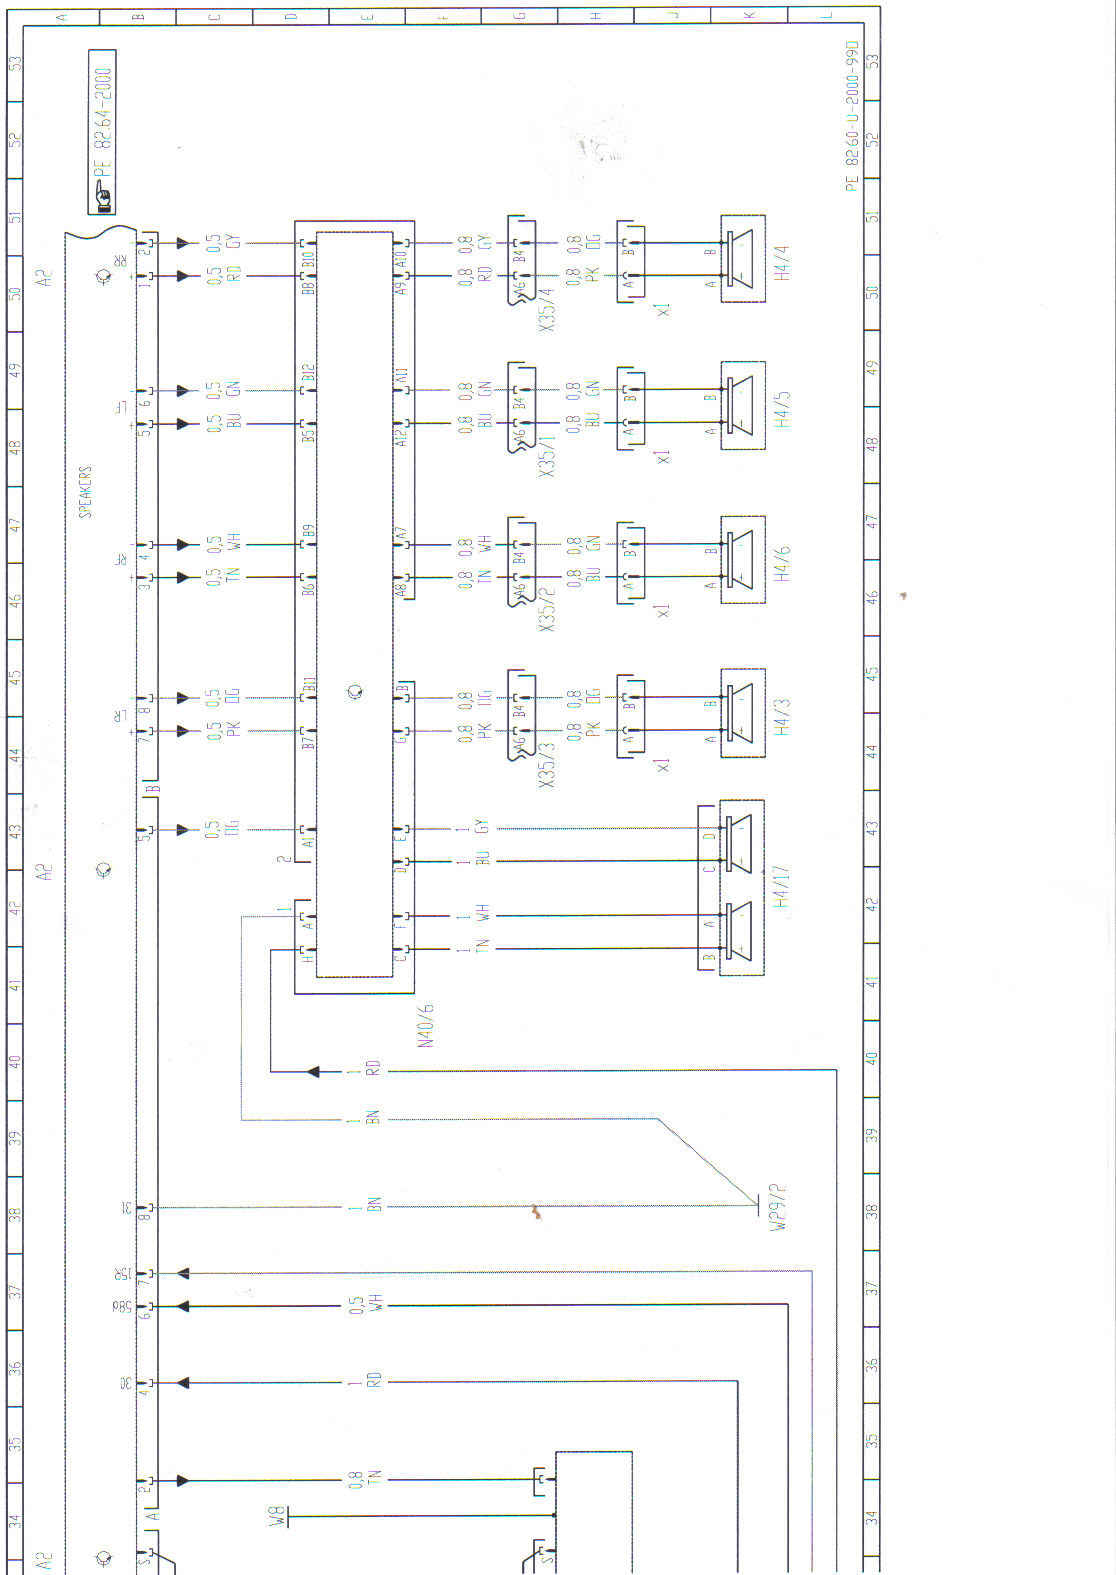 2002 Ml320 Bose Amp Wiring Diagram Wire Center Surround System 98 Pinout Of Radio Rh Justanswer Com Gm Stereo